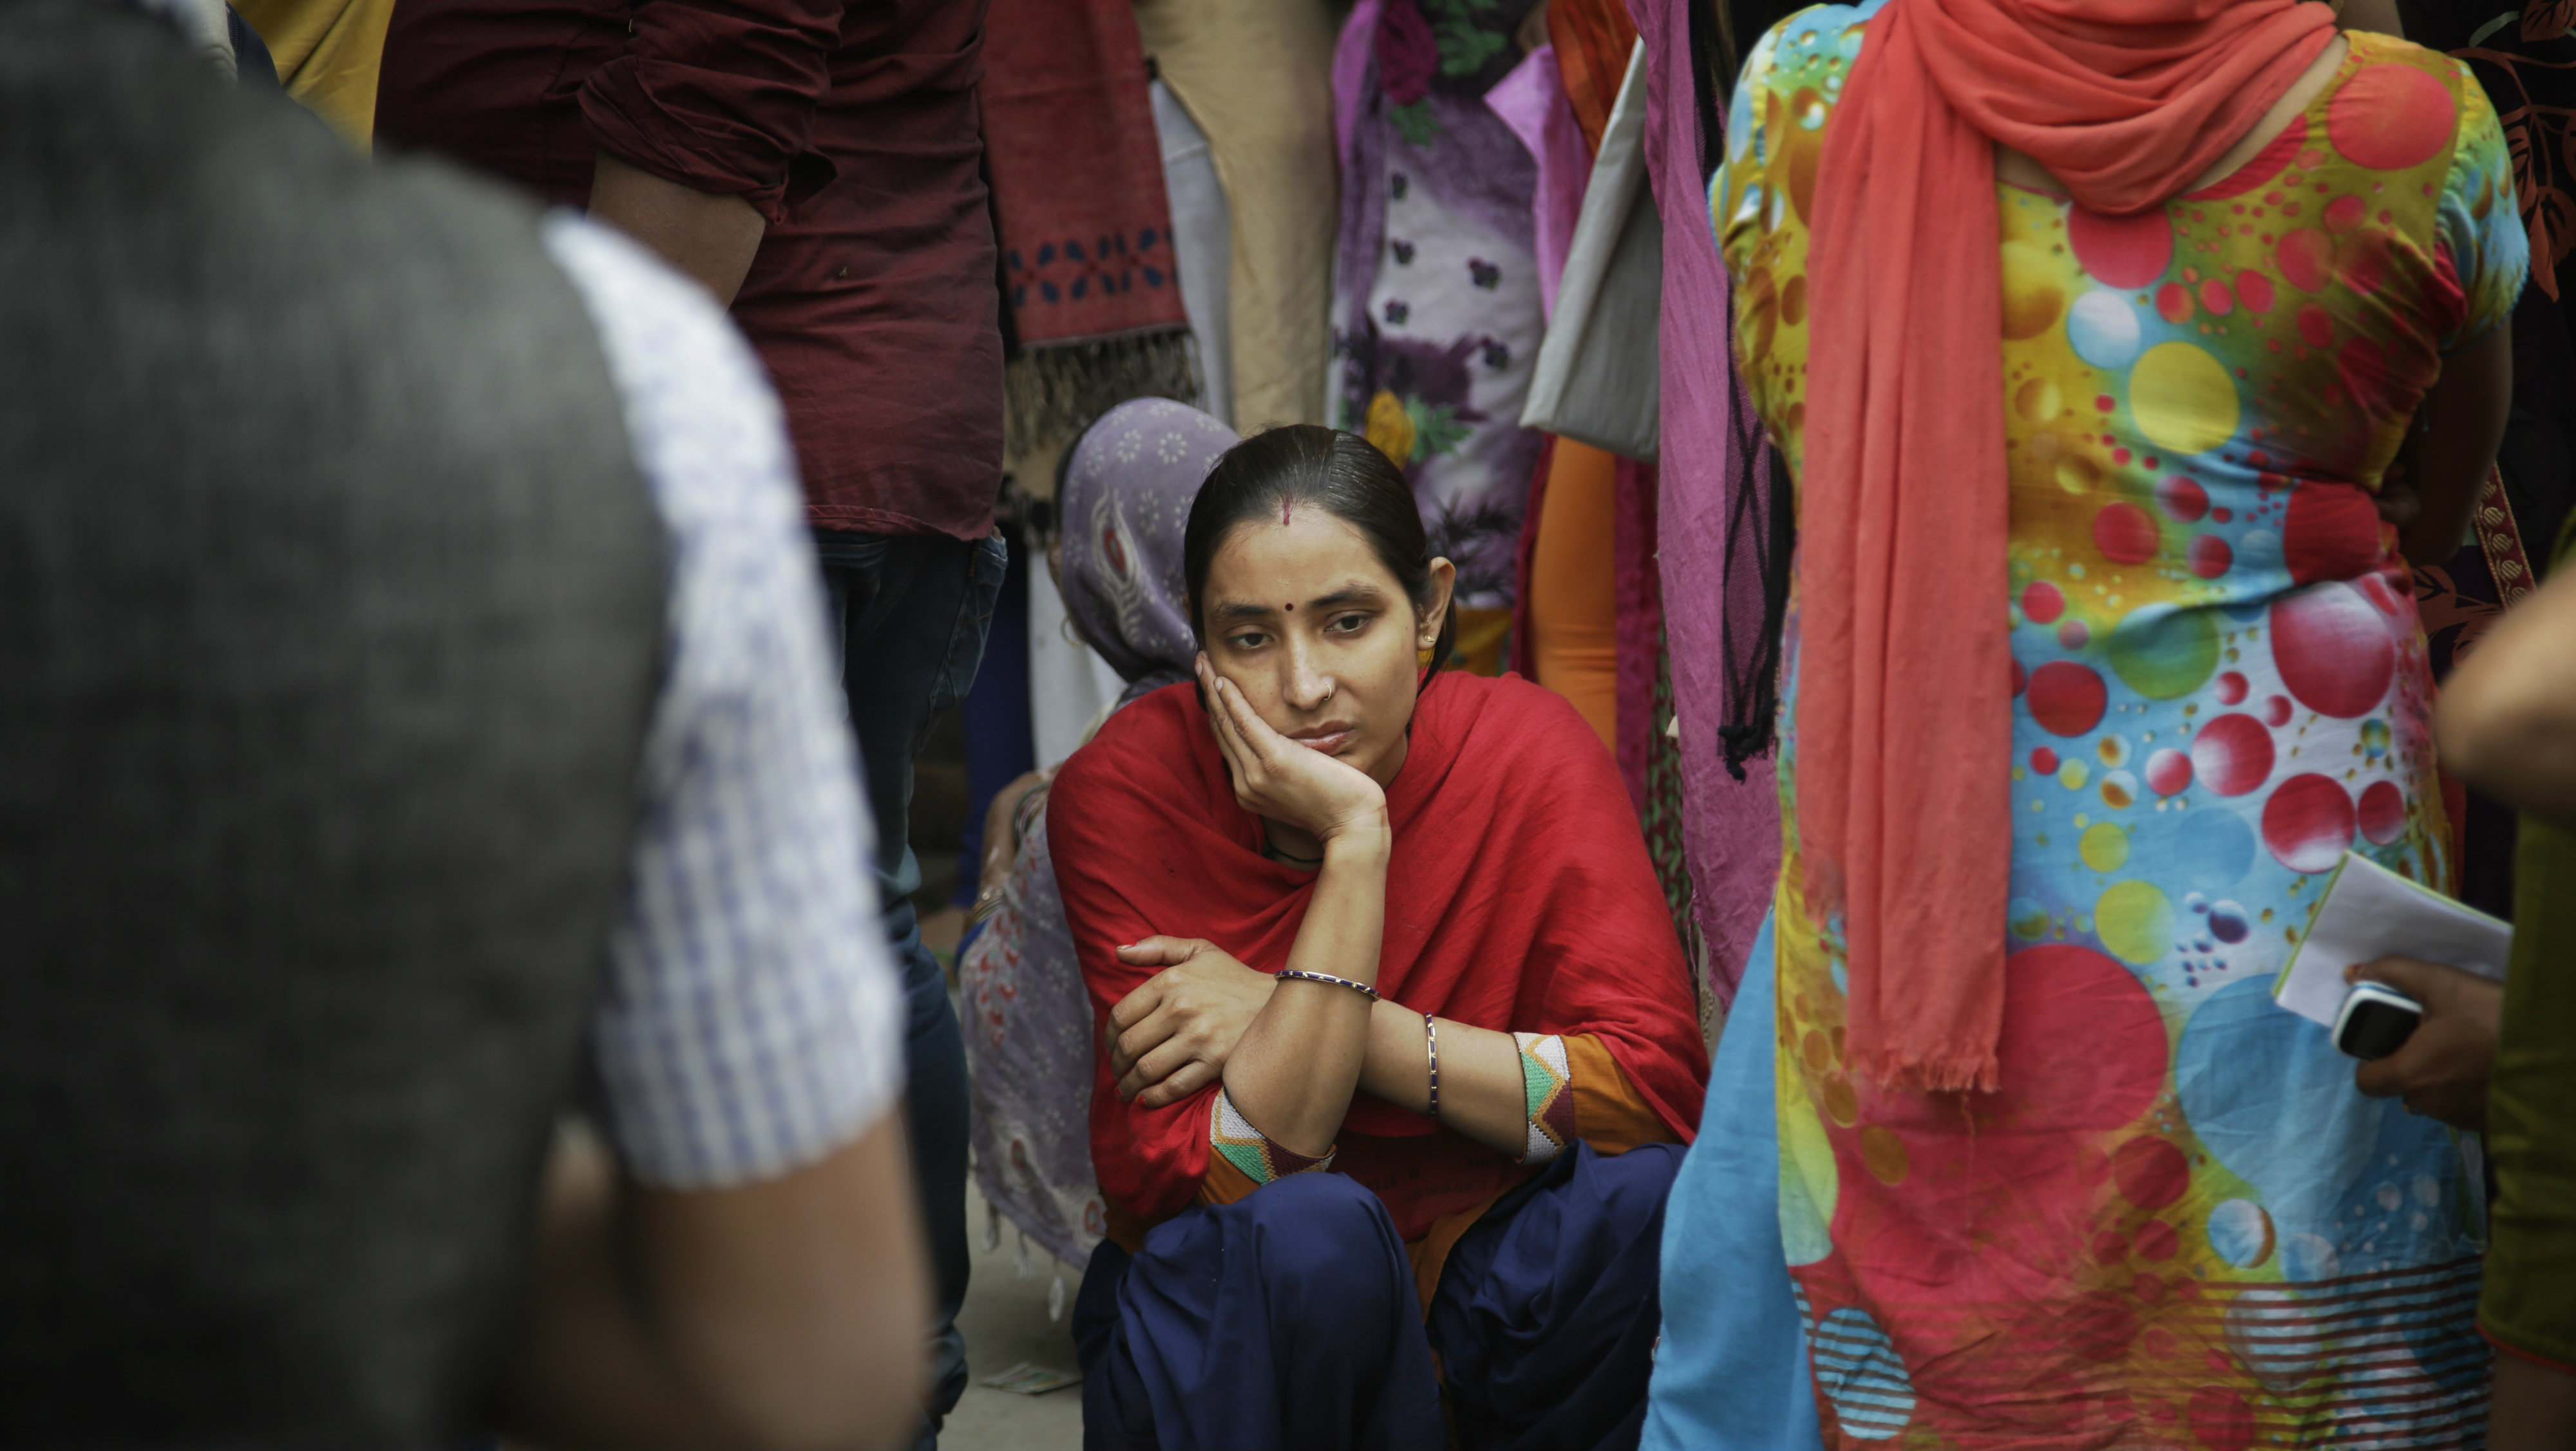 An Indian woman squats on the ground while waiting in a queue to deposit and exchange discontinued currency notes outside a bank on the outskirts of New Delhi, India, Tuesday, Nov. 15, 2016. India's government said Tuesday that it will mark the fingers of people swapping scrapped currency notes at banks with indelible ink as authorities struggle to deal with the corruption and bedlam spawned by the demonetizing of the country's highest denomination currency.